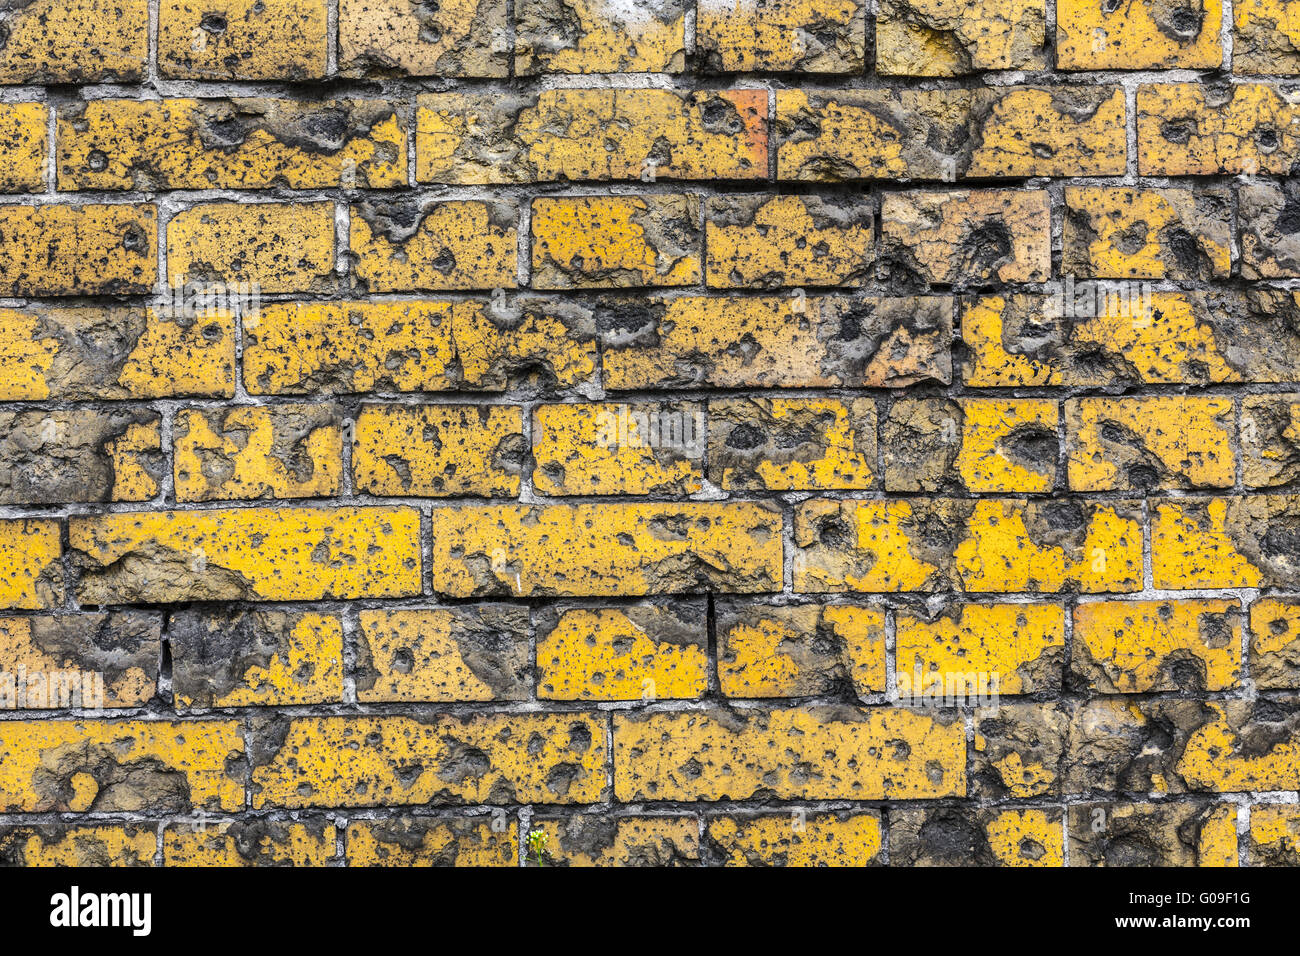 Vintage Red Brick Wall Background With Bullet Holes From WW2